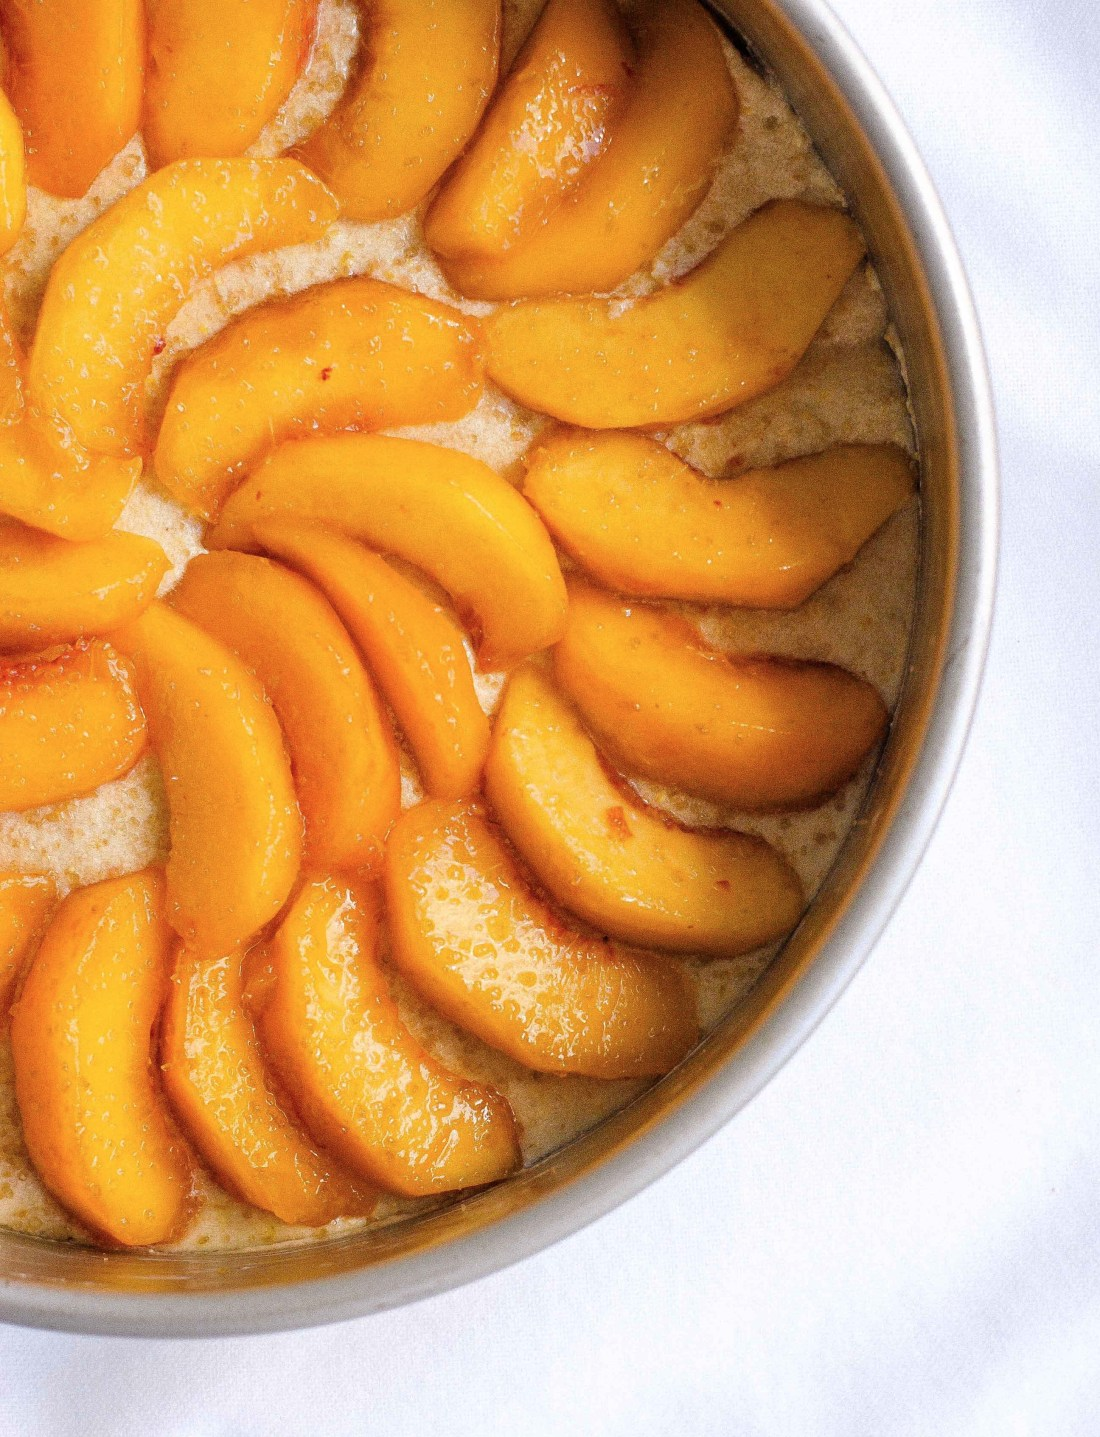 peachcornmealcake.jpg